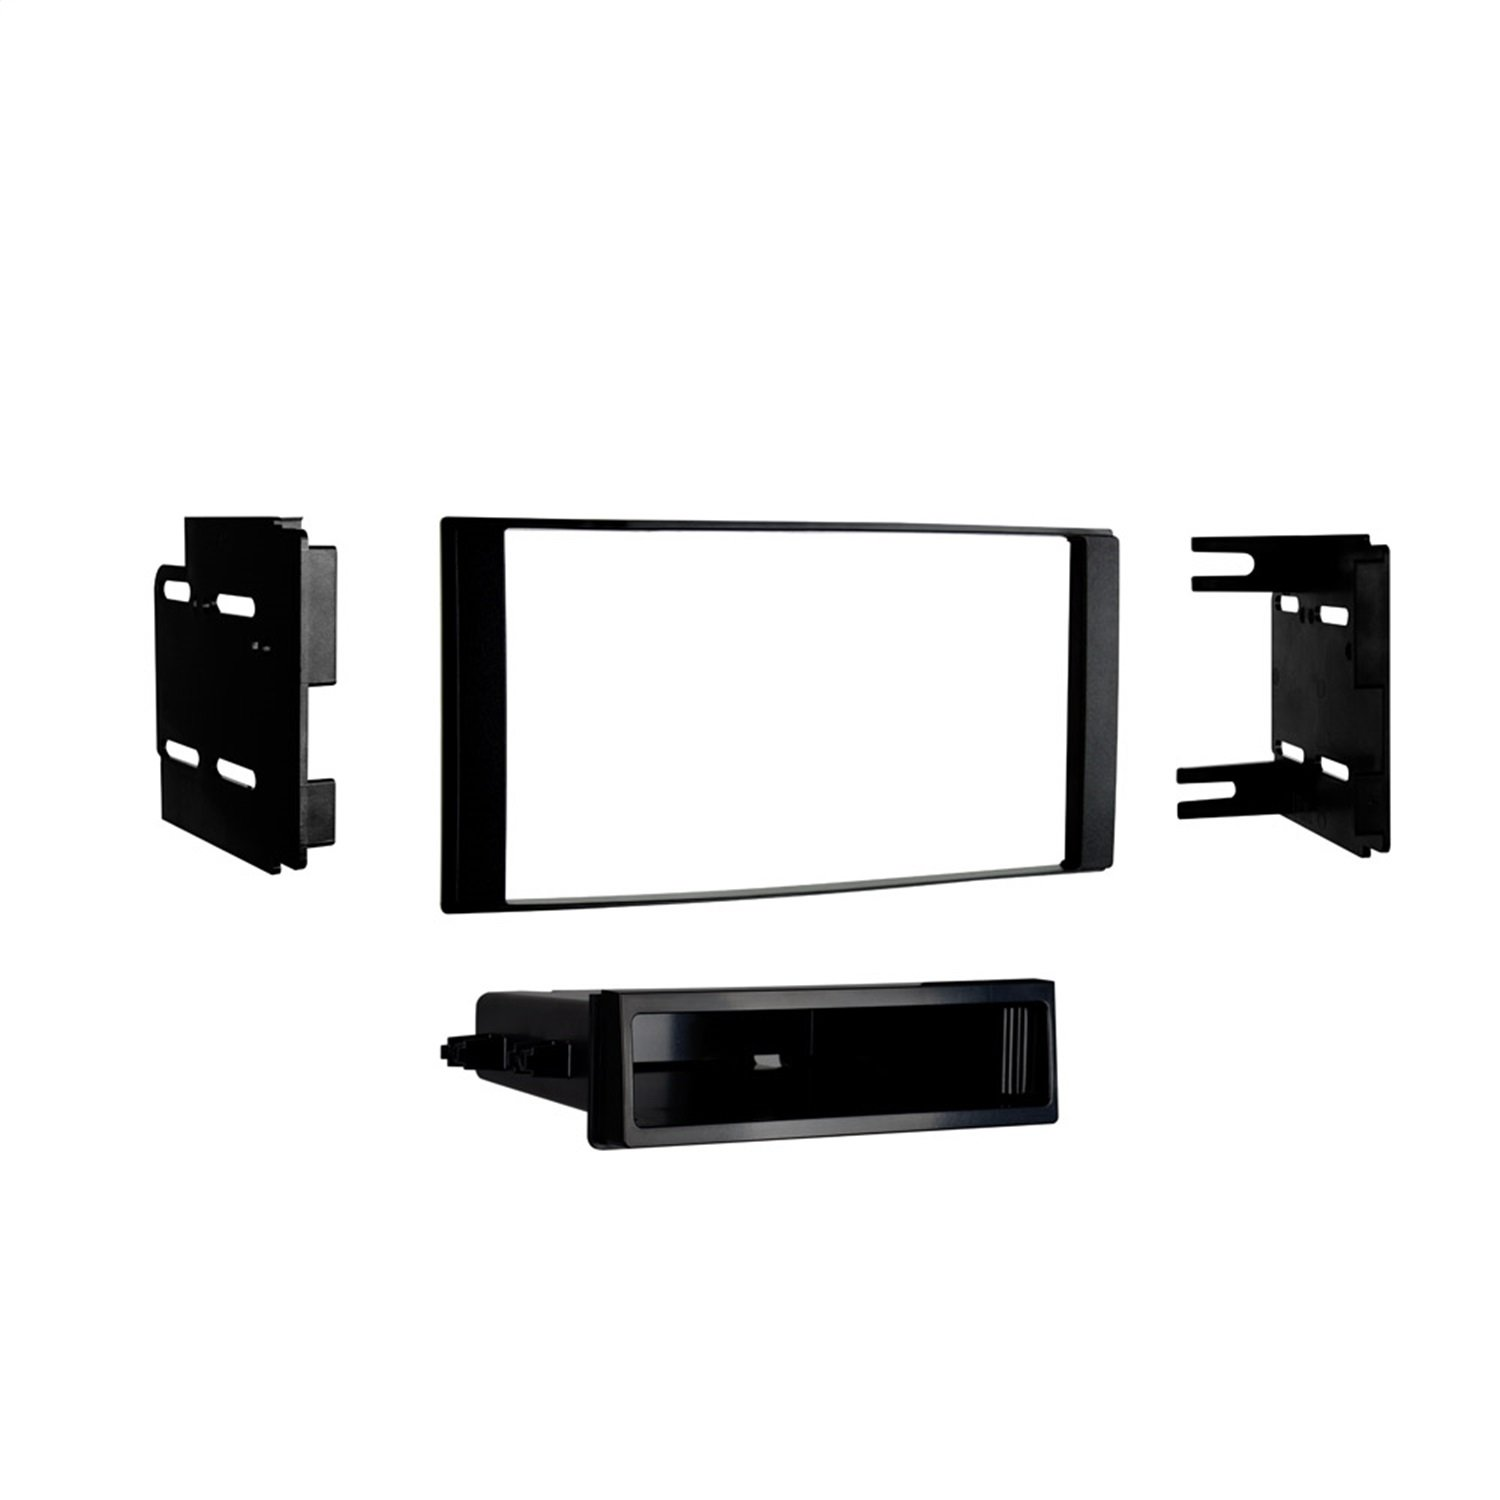 Metra 99-7621 Installation Dash Kit for 2014- Nissan Versa (Black)